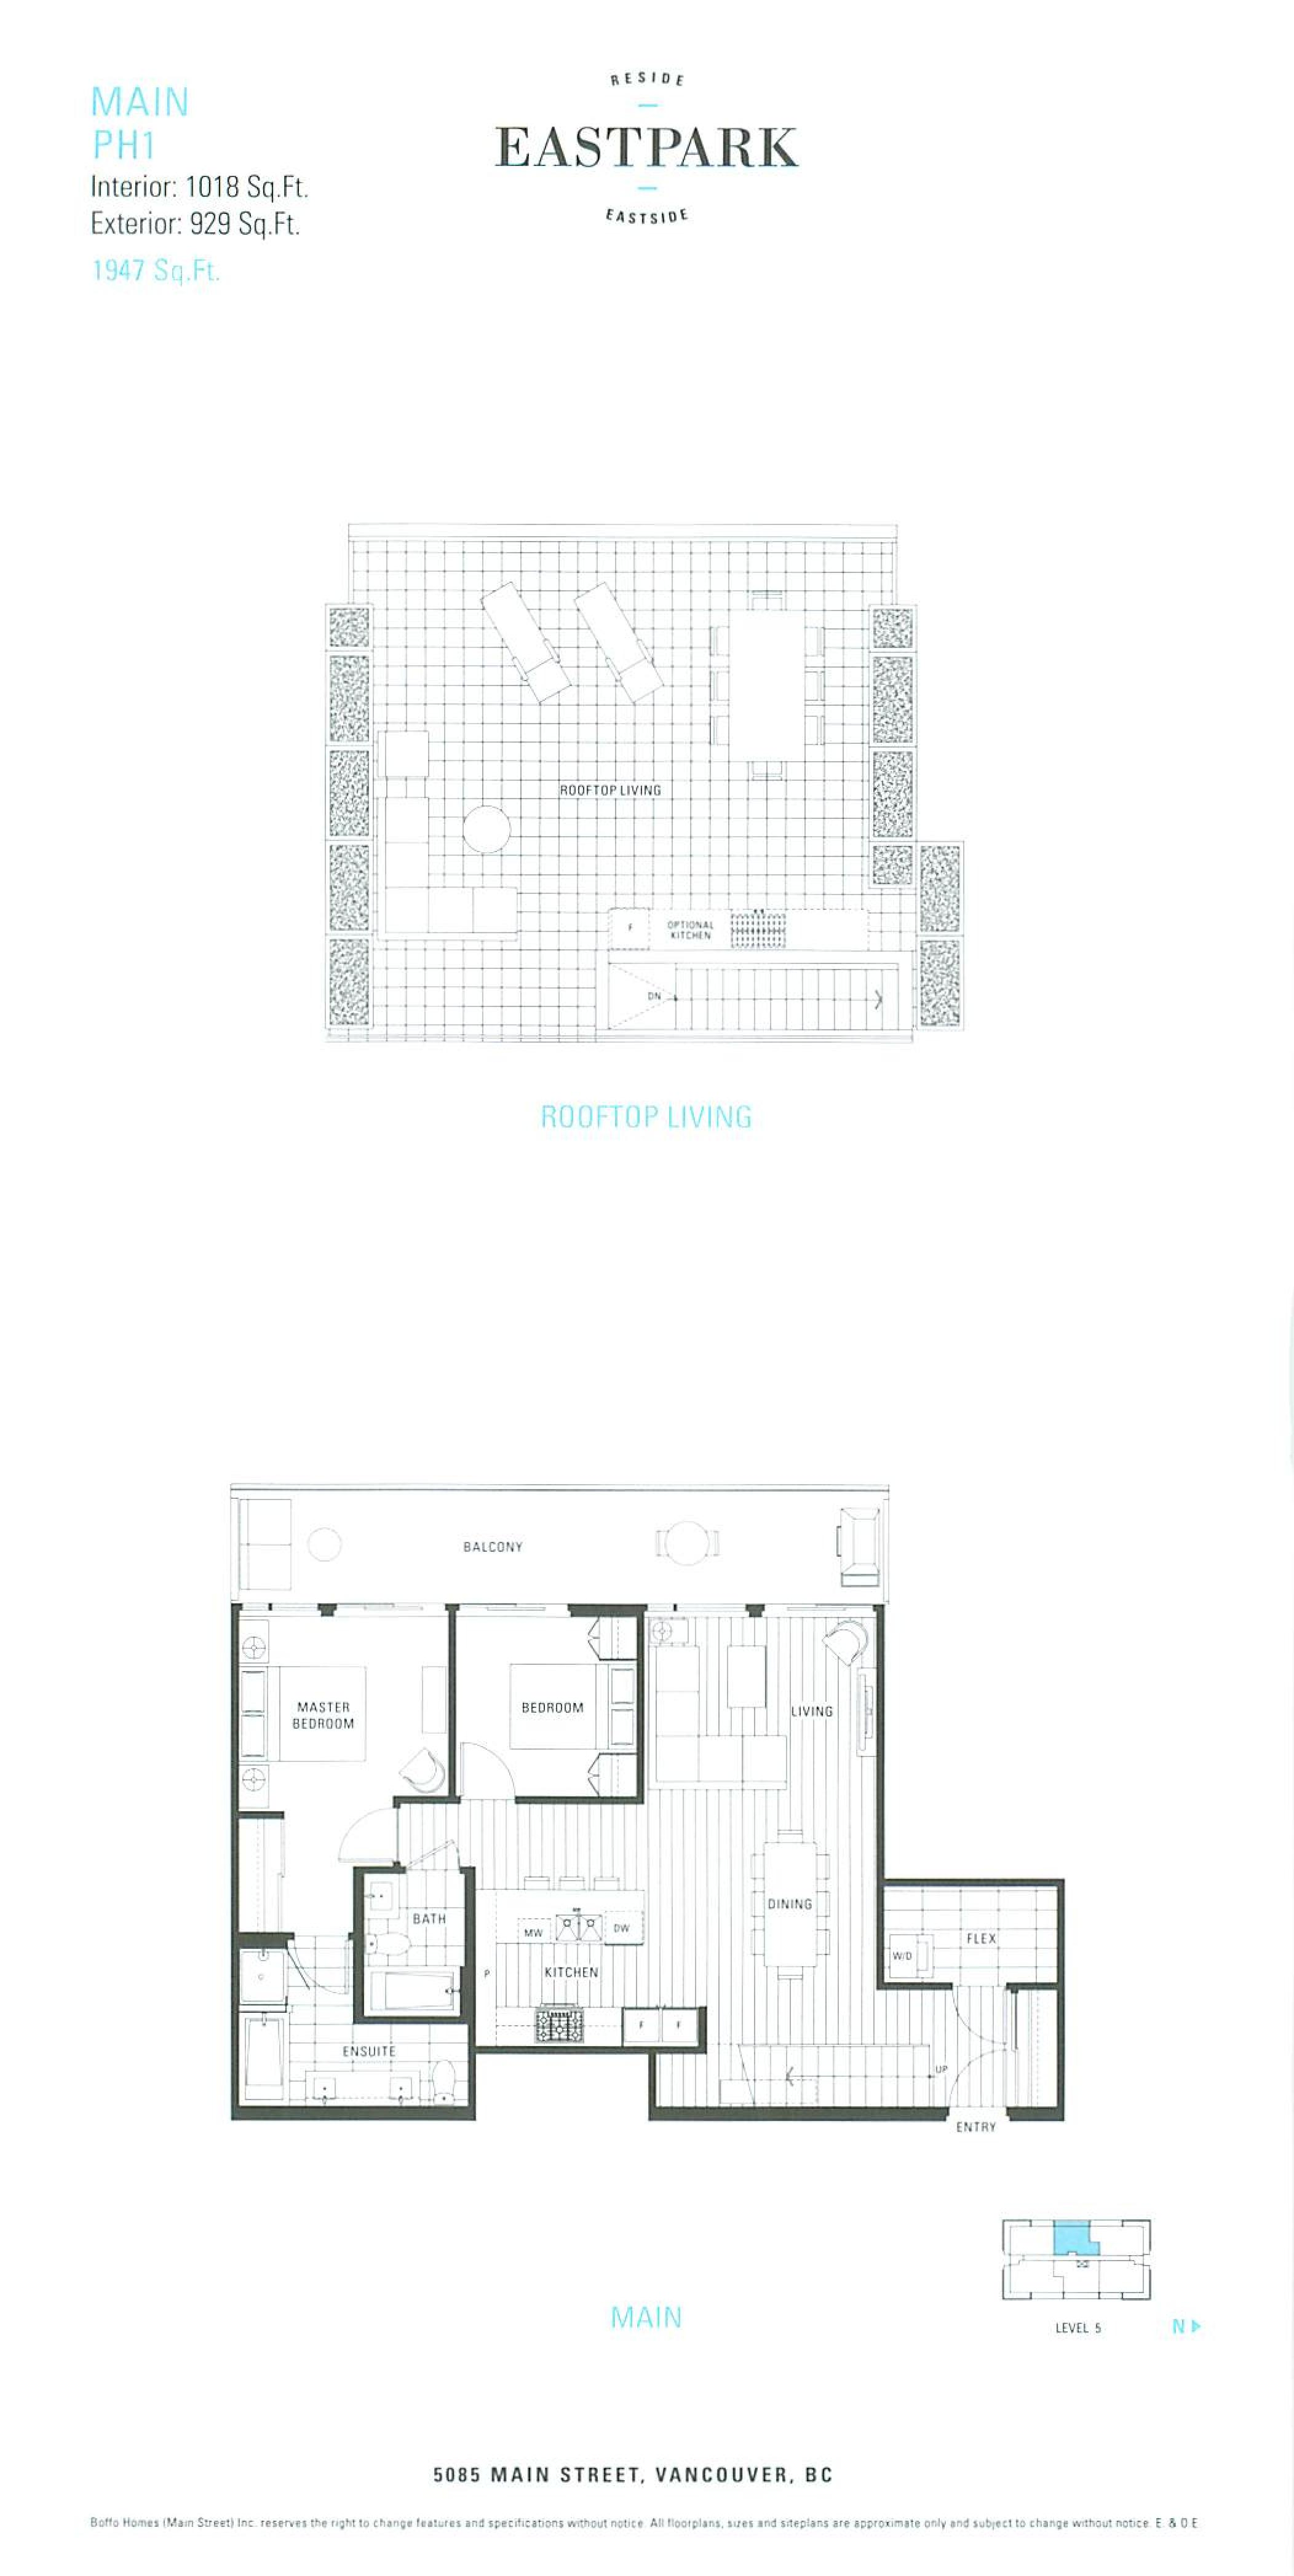 EastPark Main Larger Floor Plans Mike Stewart-page-009